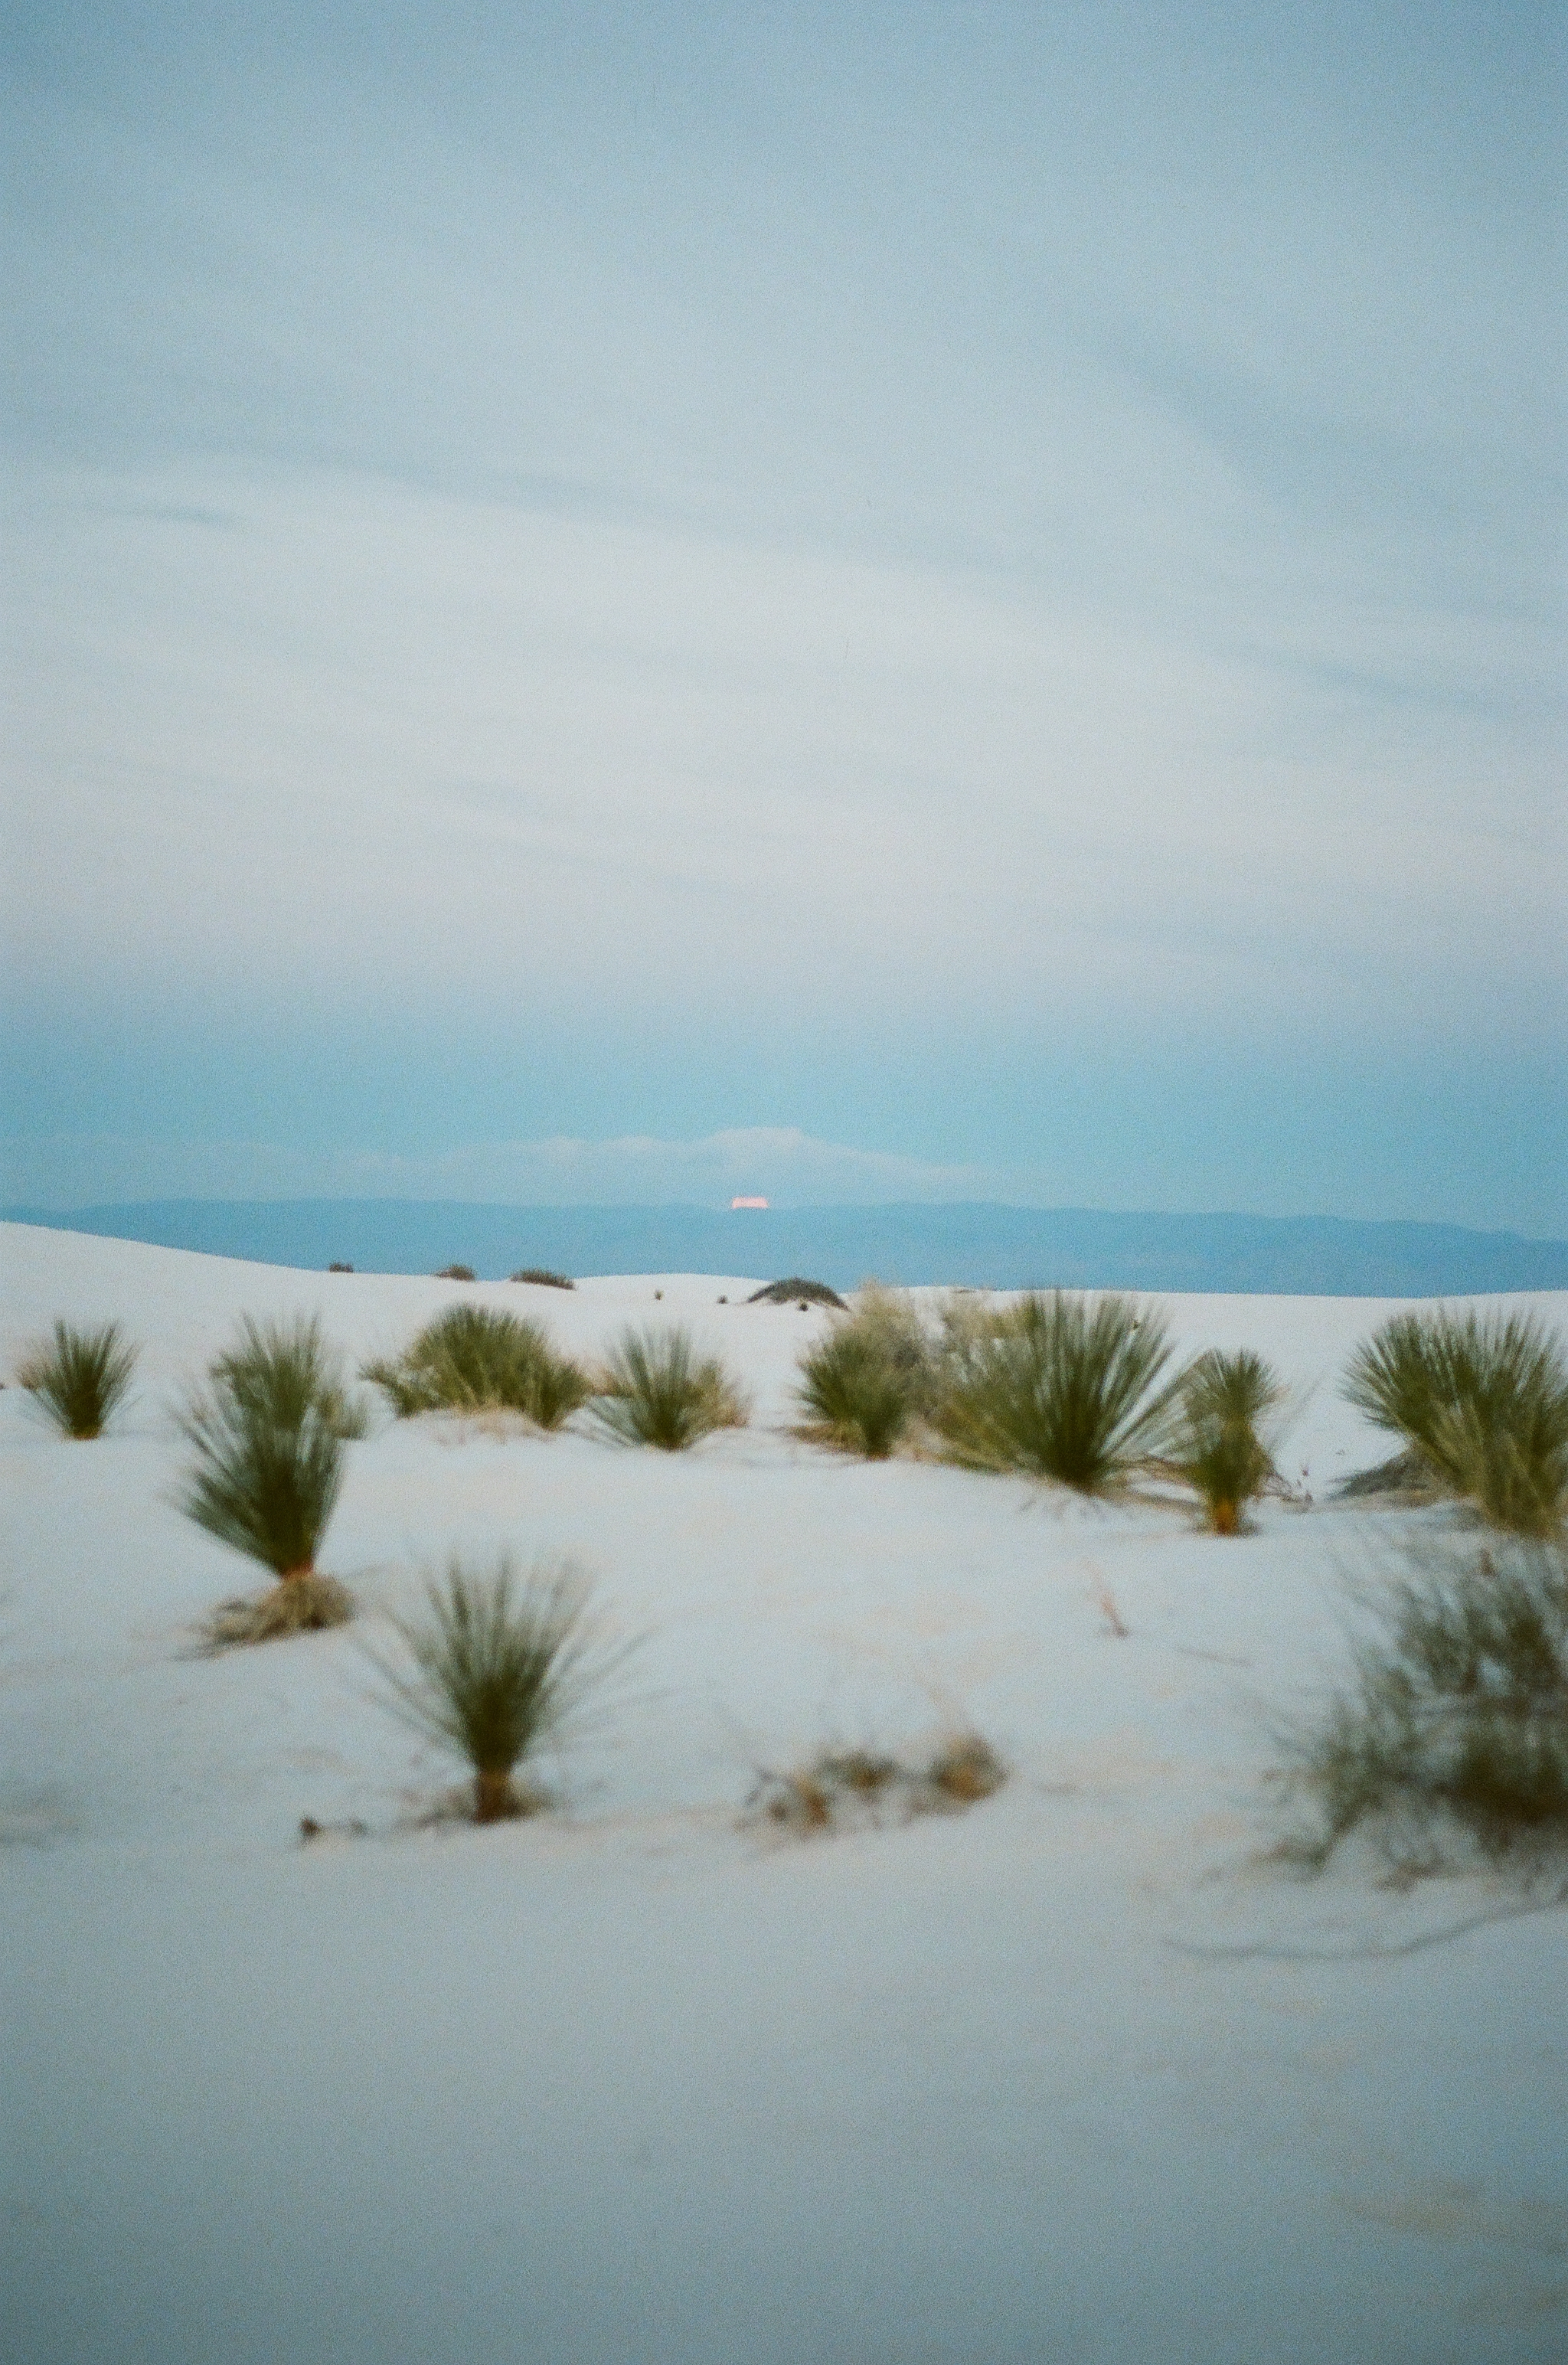 Moon rising over White Sands, 35mm